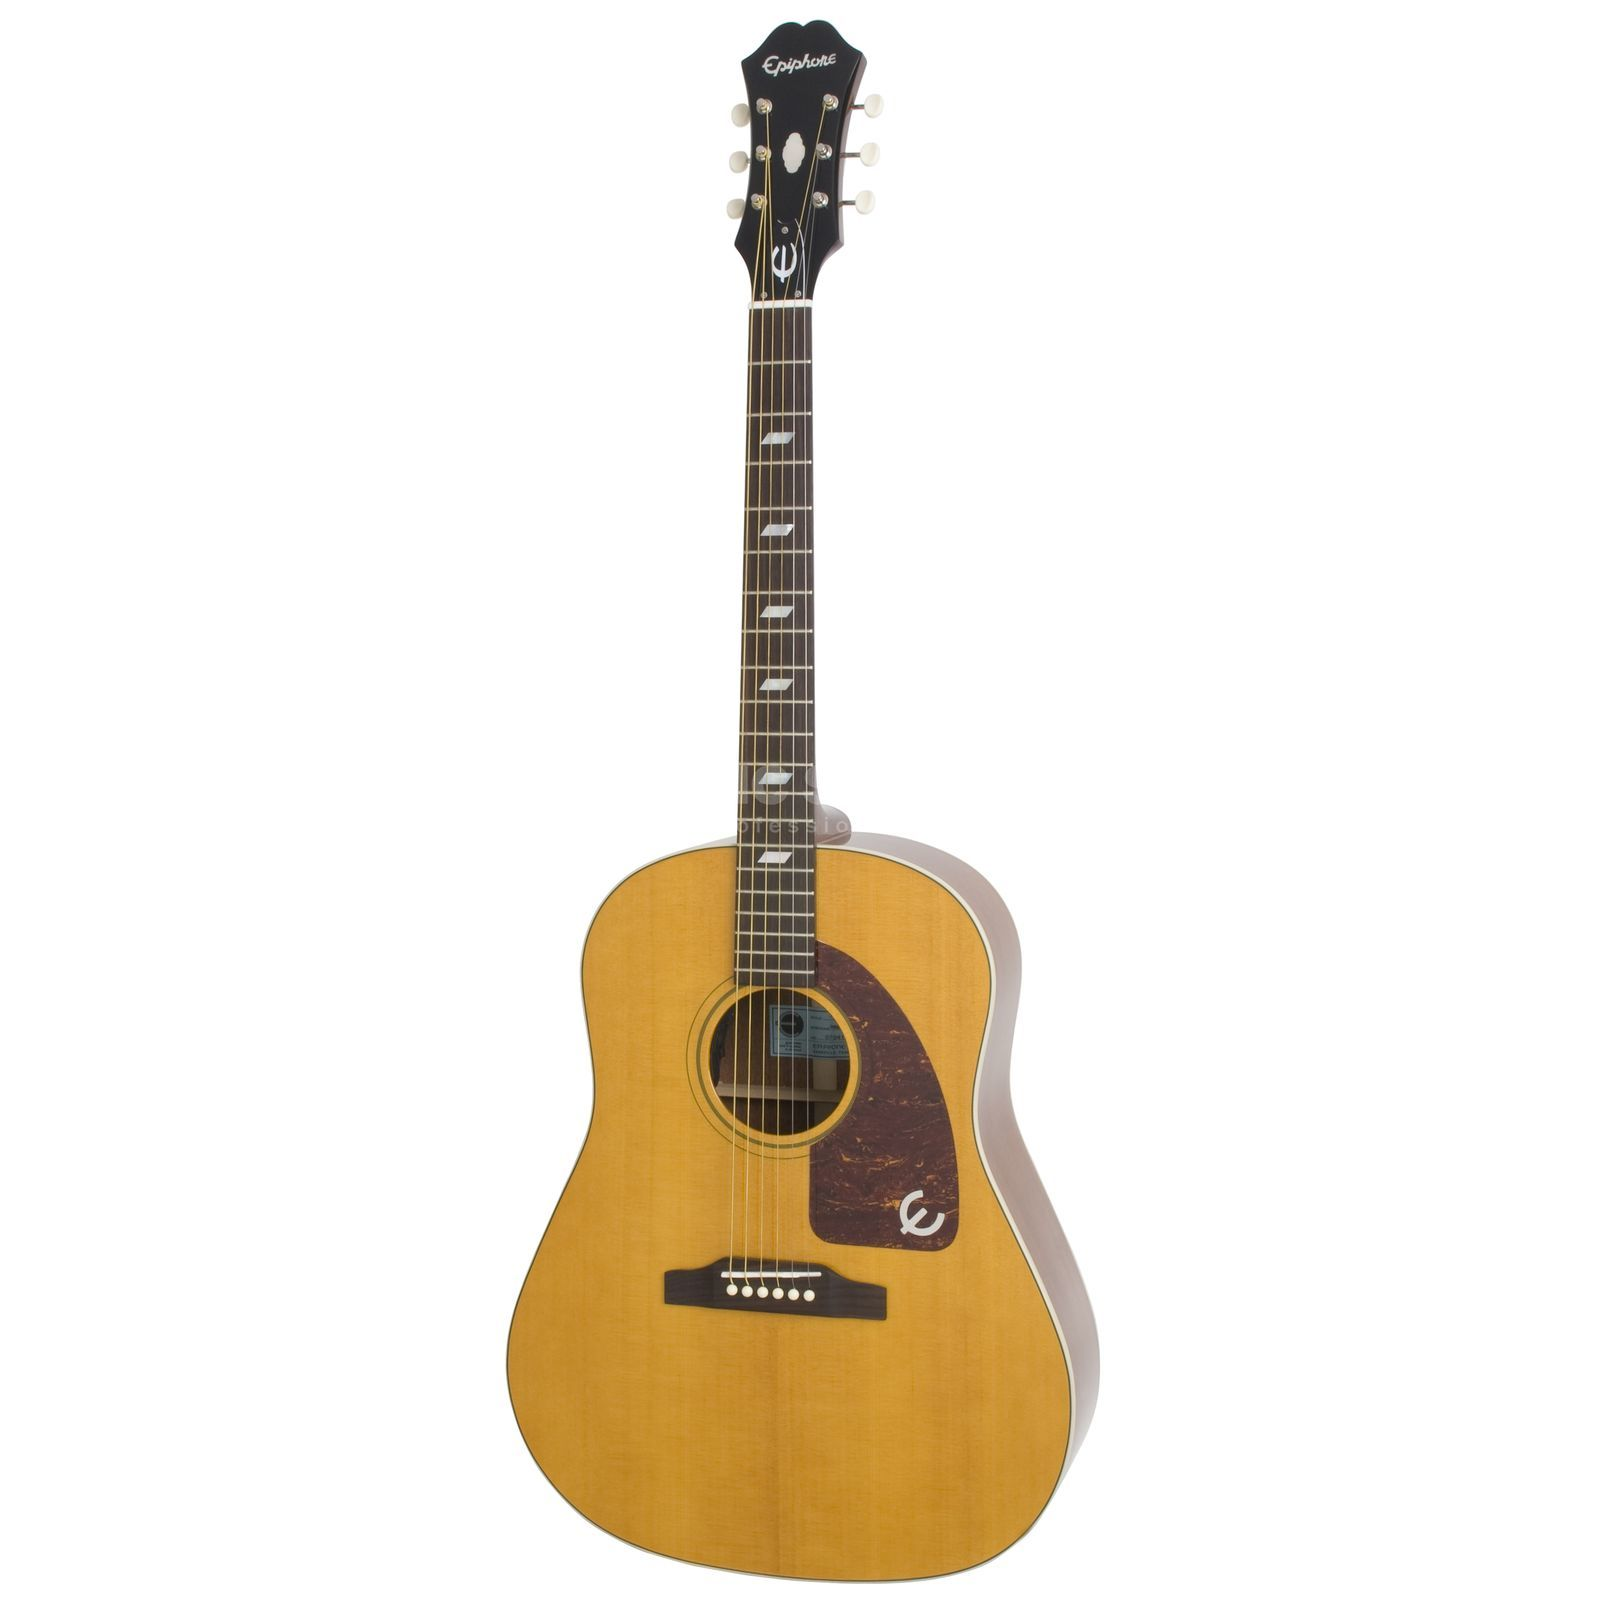 Epiphone 1964 Texan AN Antique Natural Produktbild